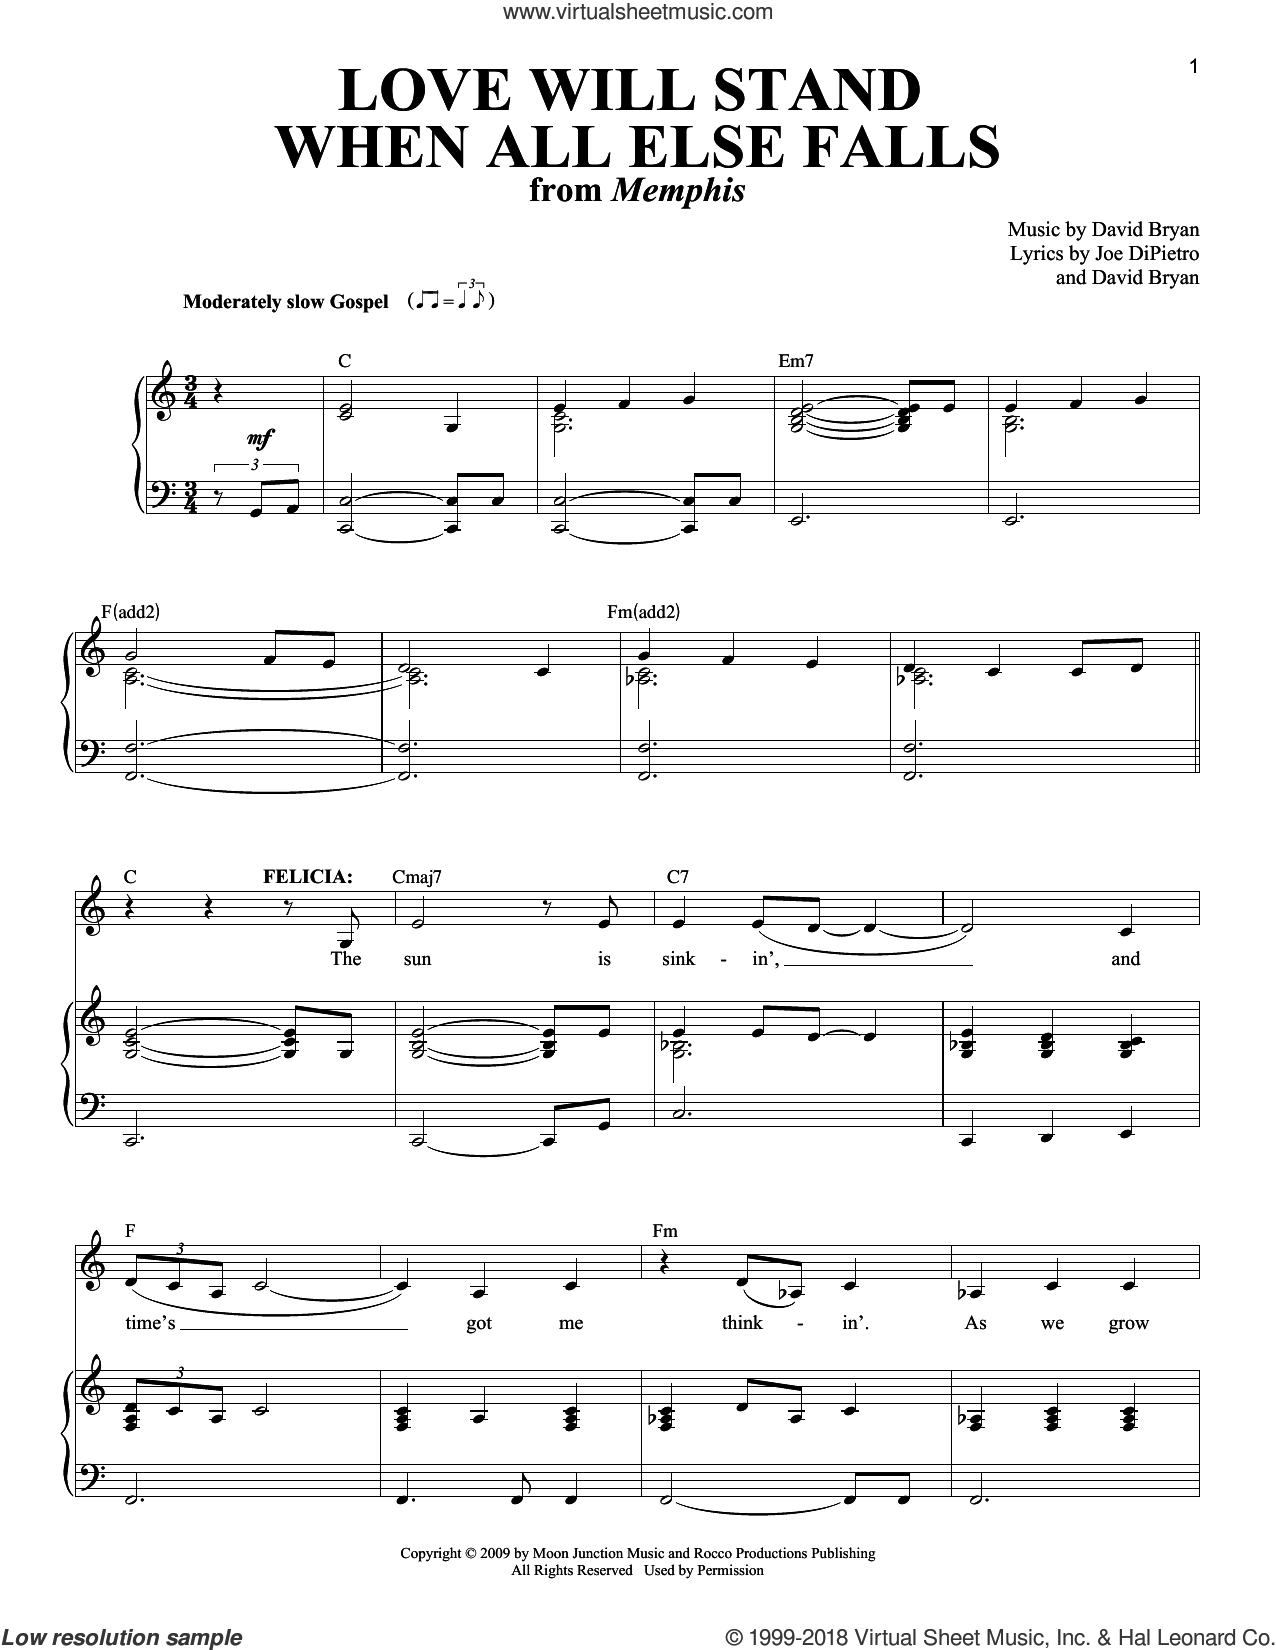 Love Will Stand When All Else Falls sheet music for voice and piano by David Bryan and Joe DiPietro, intermediate voice. Score Image Preview.